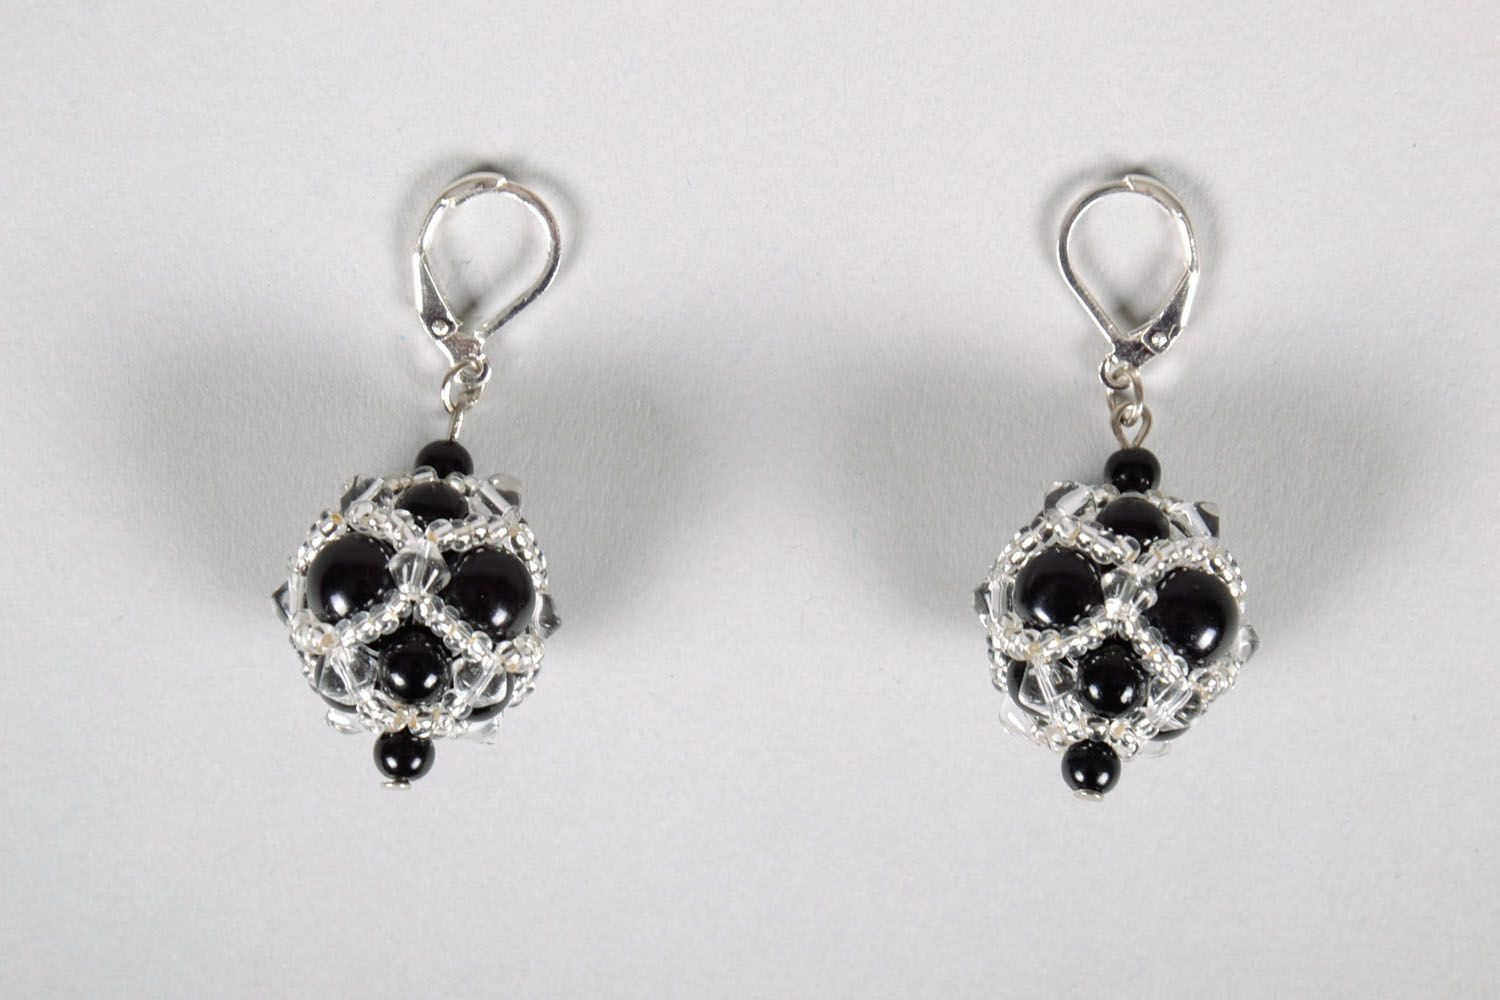 Evening earrings with black beads photo 2